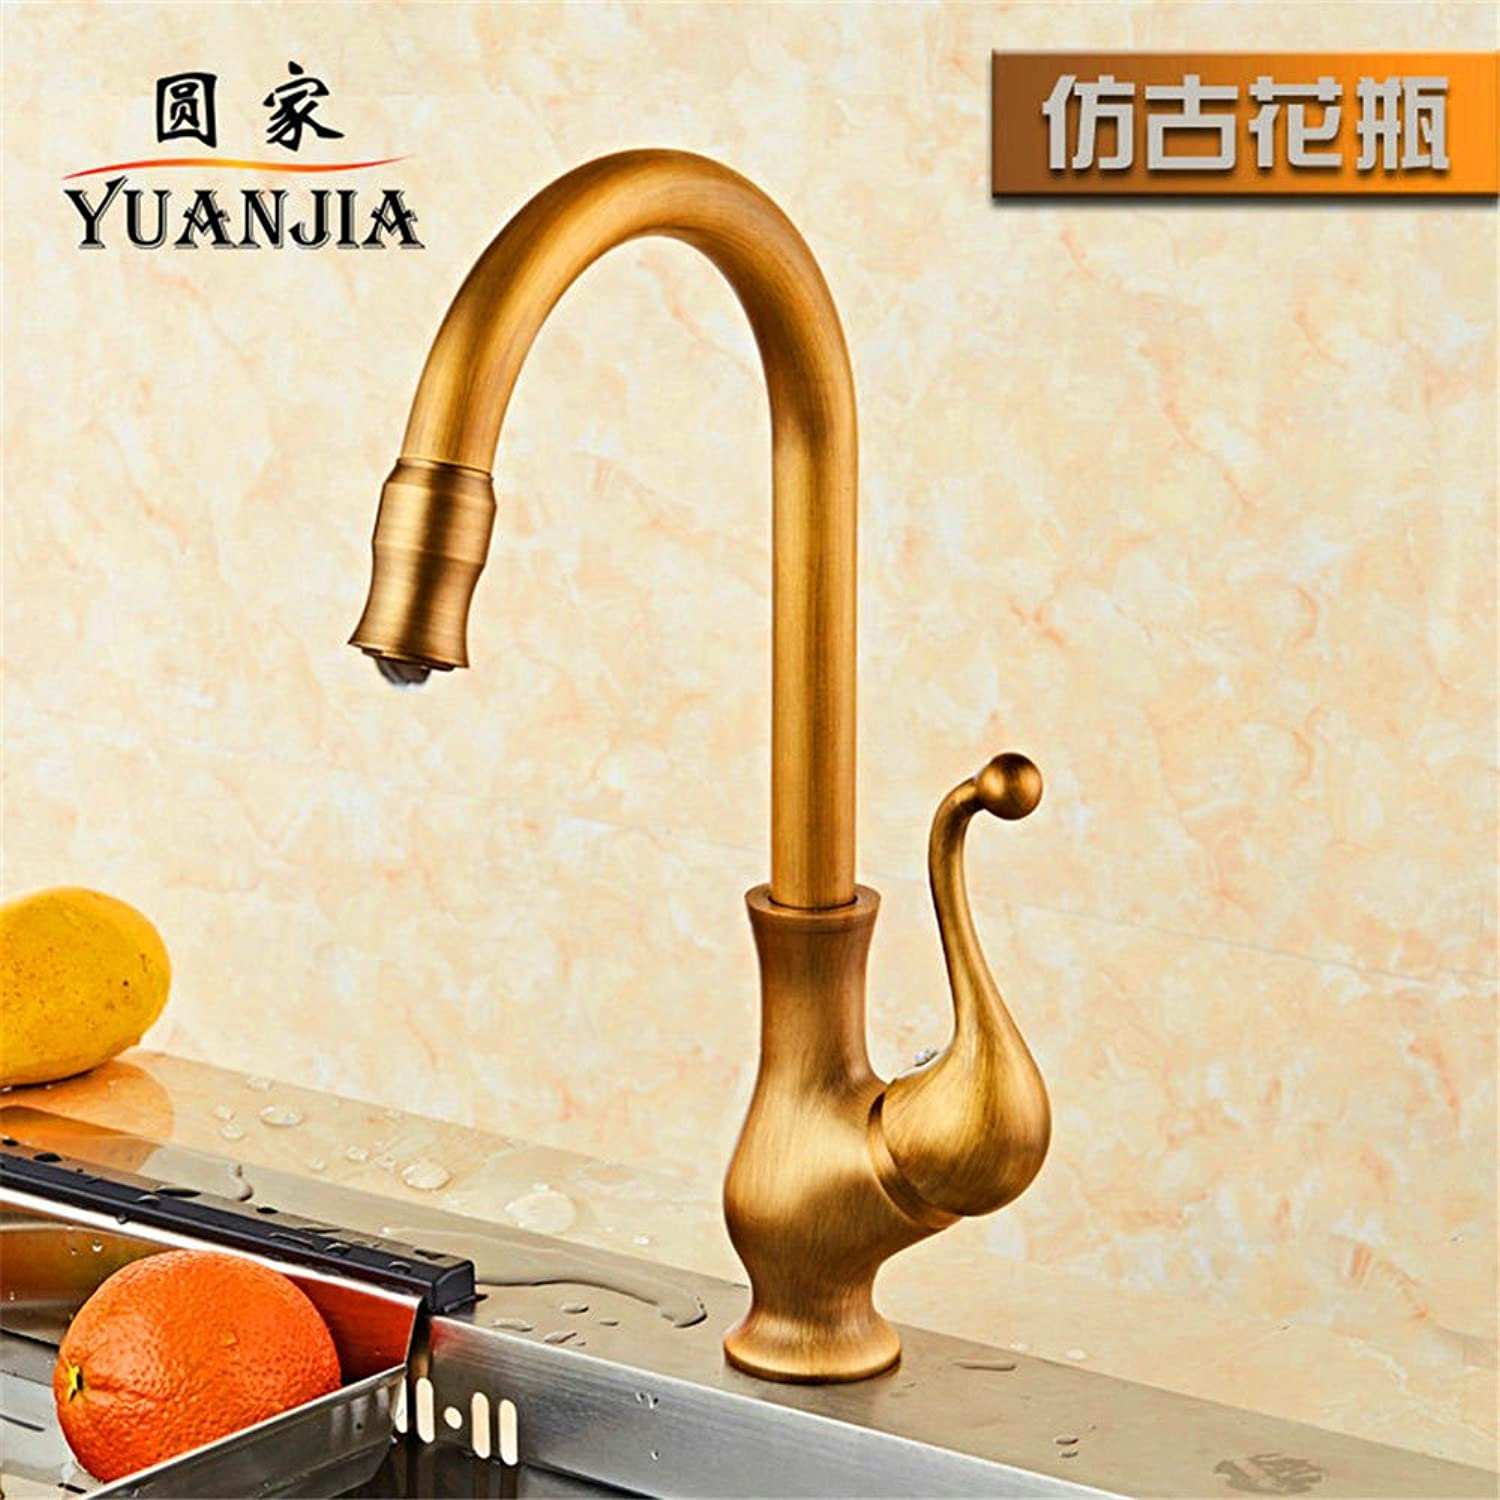 ETERNAL QUALITY Bathroom Sink Basin Tap Brass Mixer Tap Washroom Mixer Faucet All copper antique kitchen faucet hot and cold dishes antique wash basin basin redation sing